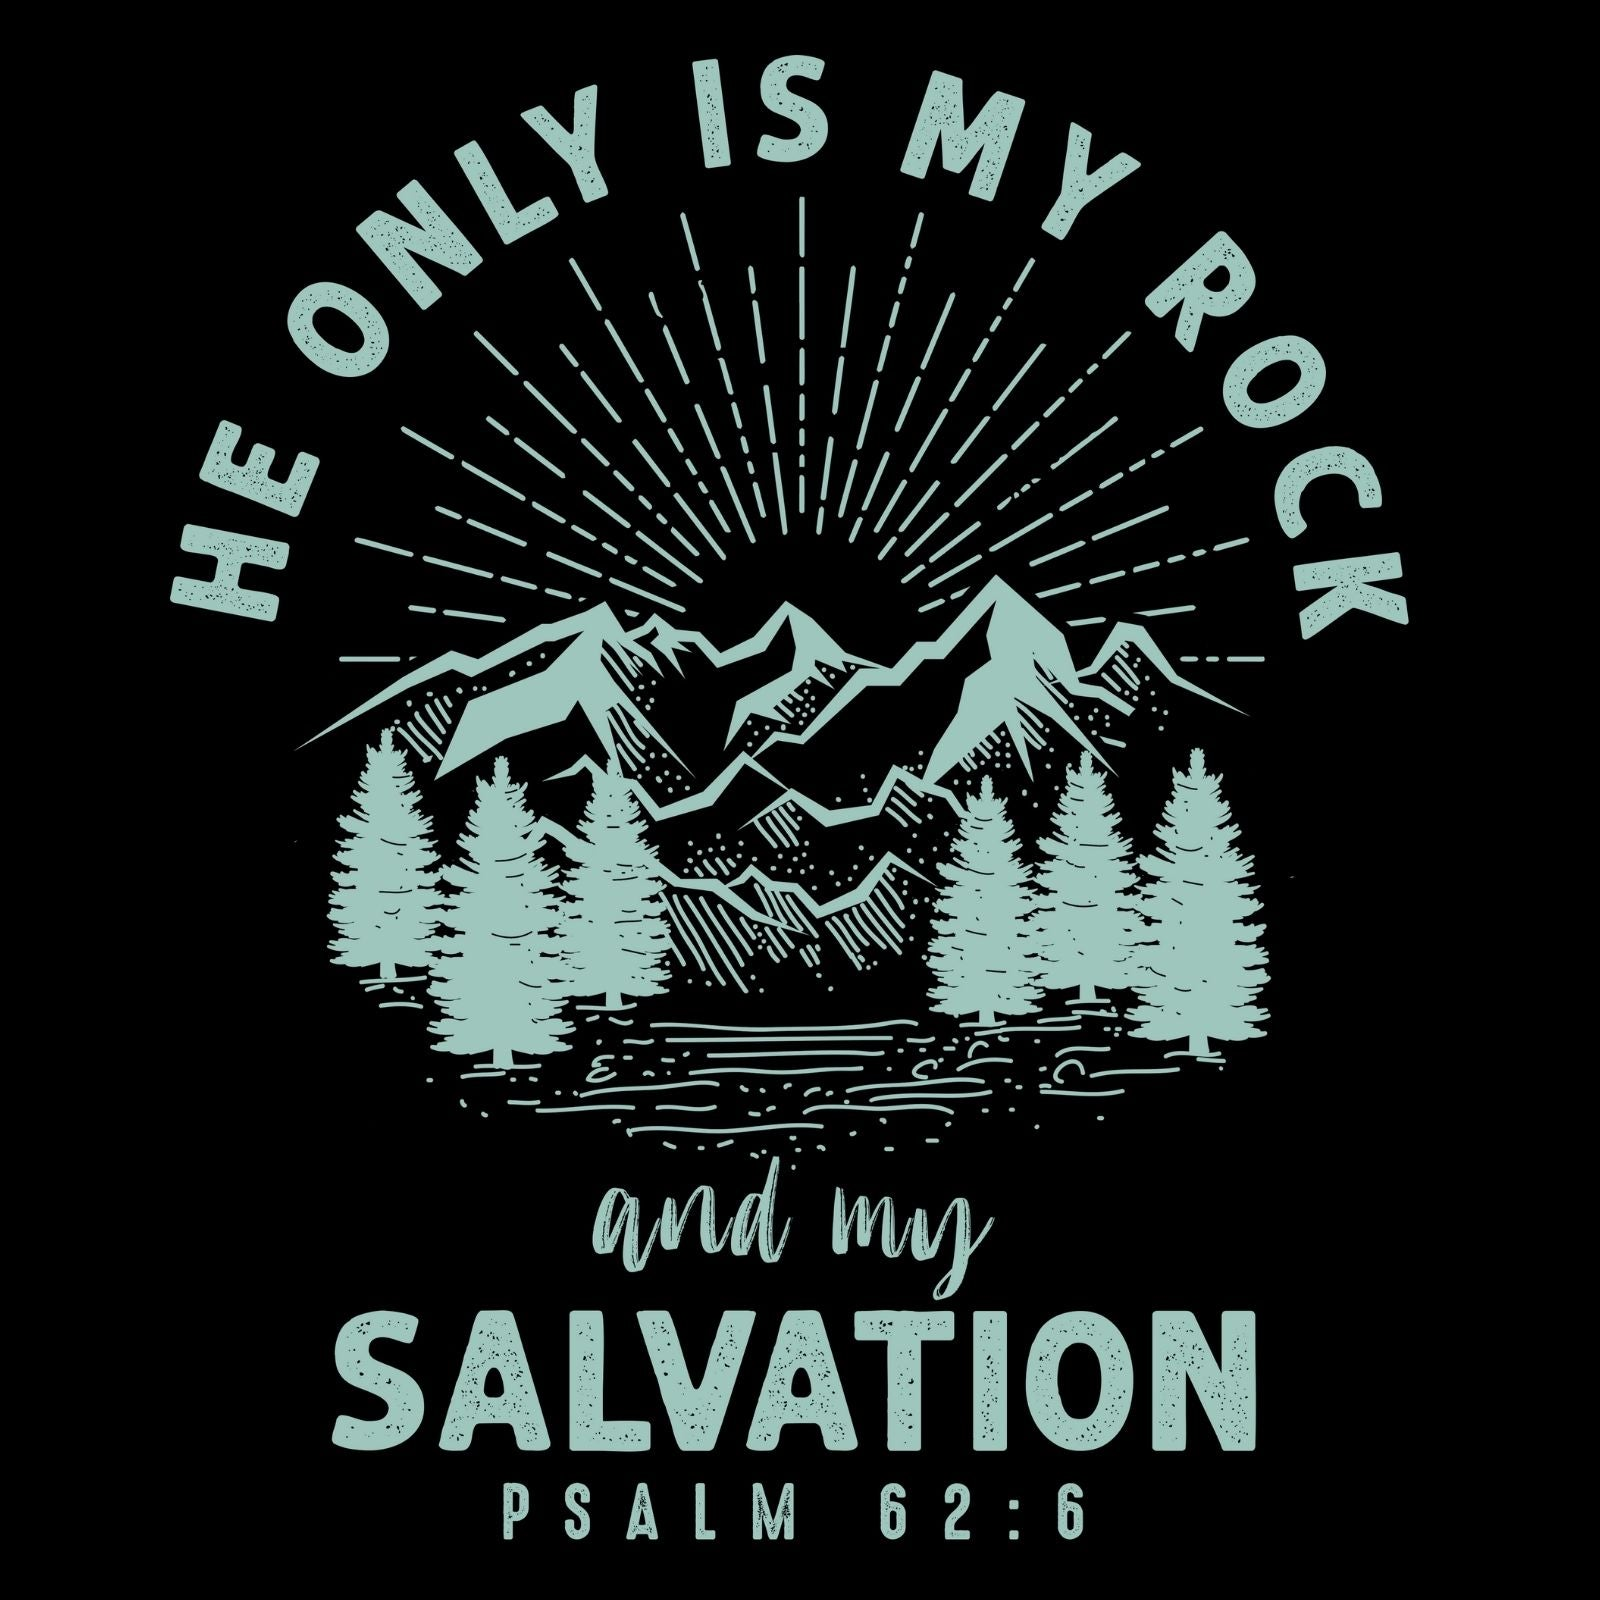 He Only Is My Rock And My Salvation (Psalm 62:6) - Bastard Graphics